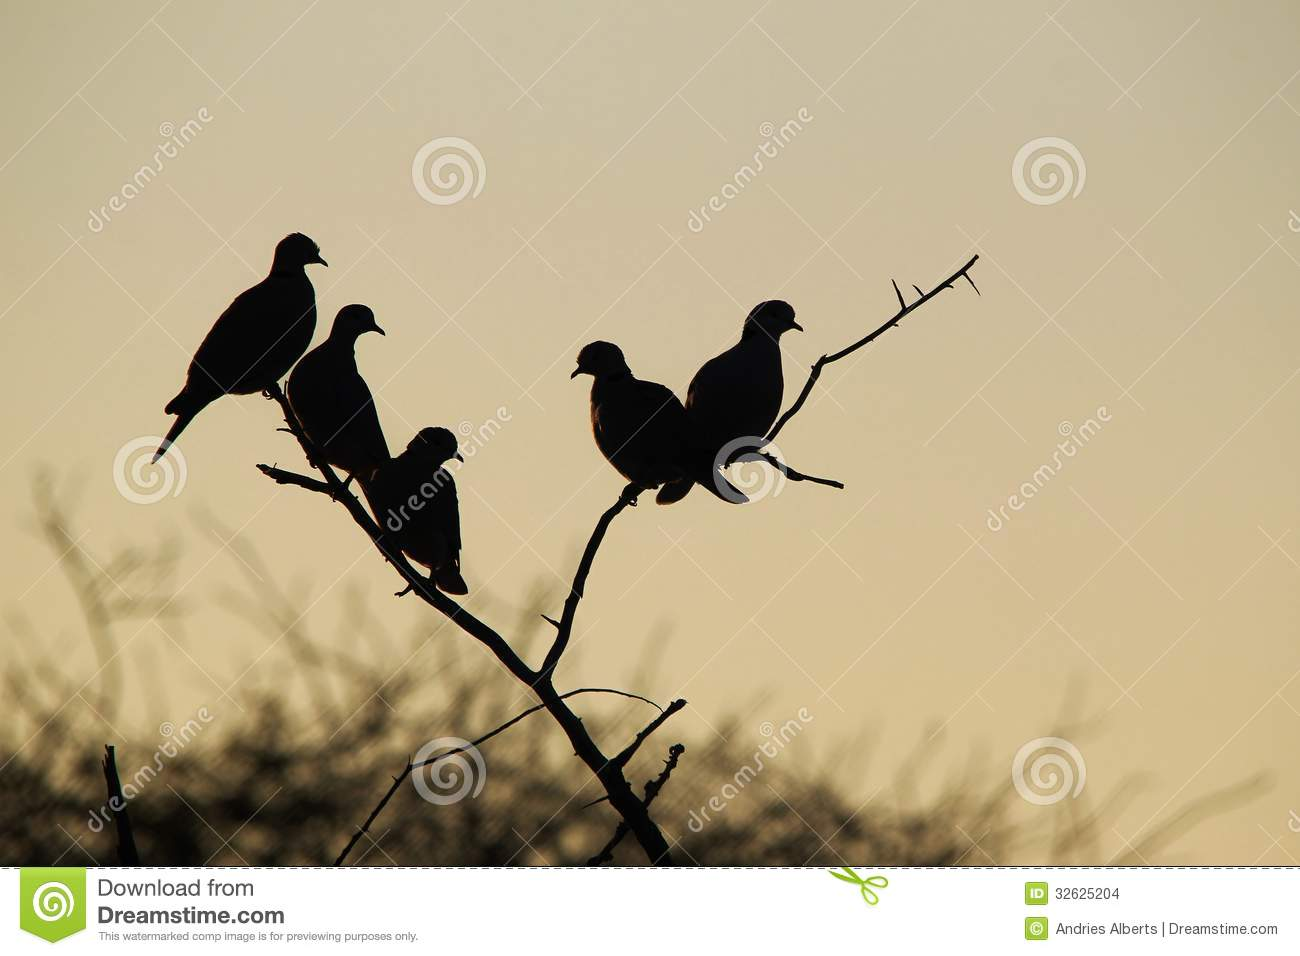 Dove Silhouette - Background Beauty - African wild birds